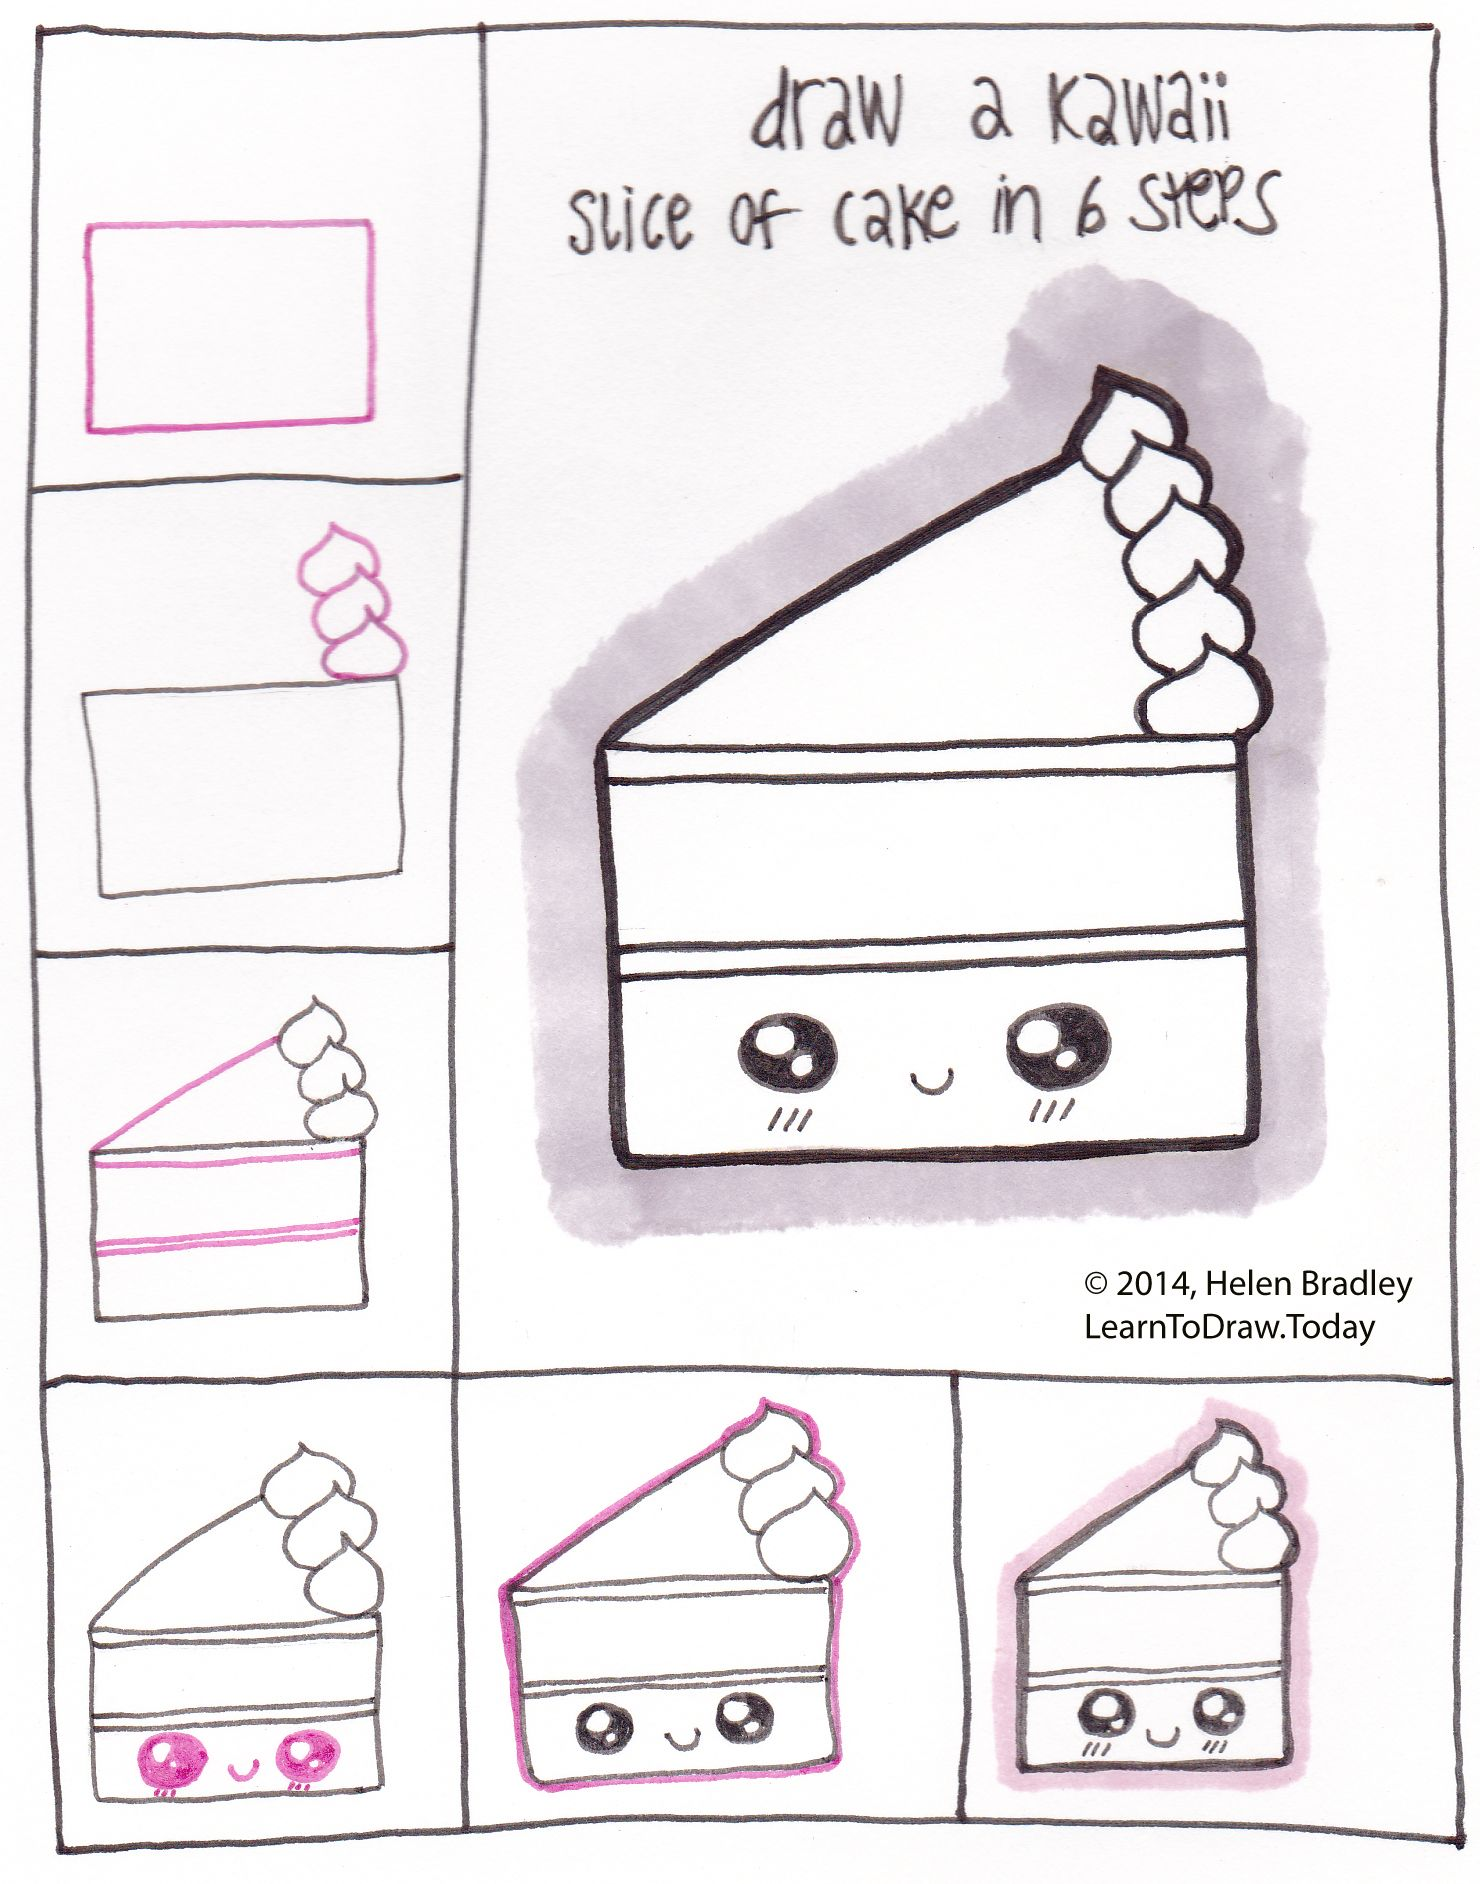 Draw kawaii style cake in 6 steps kawaii and doodles for Drawing ideas for beginners step by step